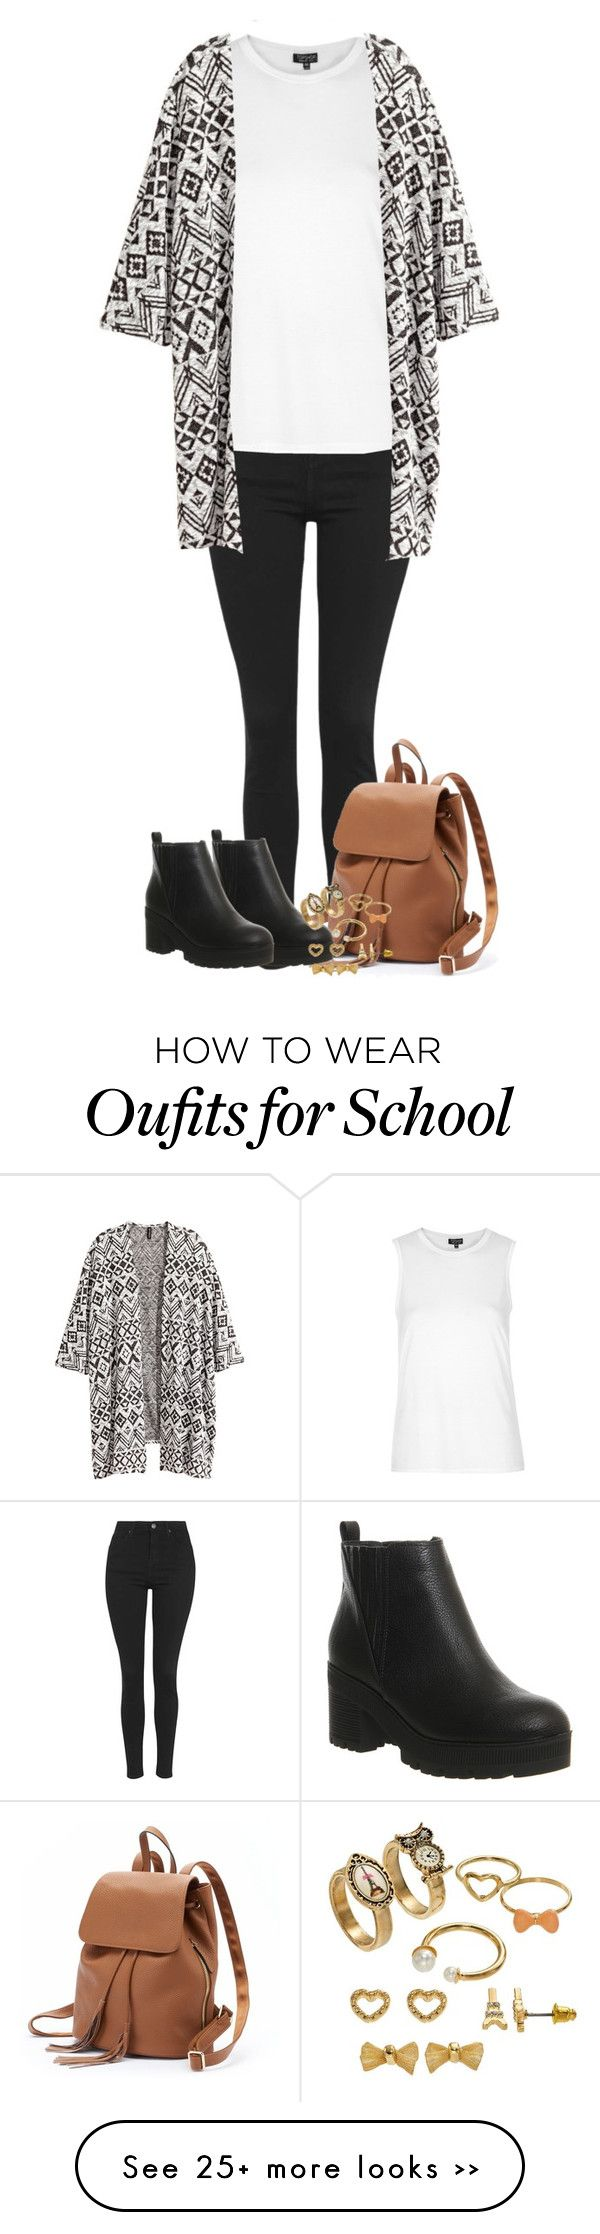 """""""back to school"""" by zayngirl27 on Polyvore featuring Topshop, H&M, PAVA, Office and SO"""